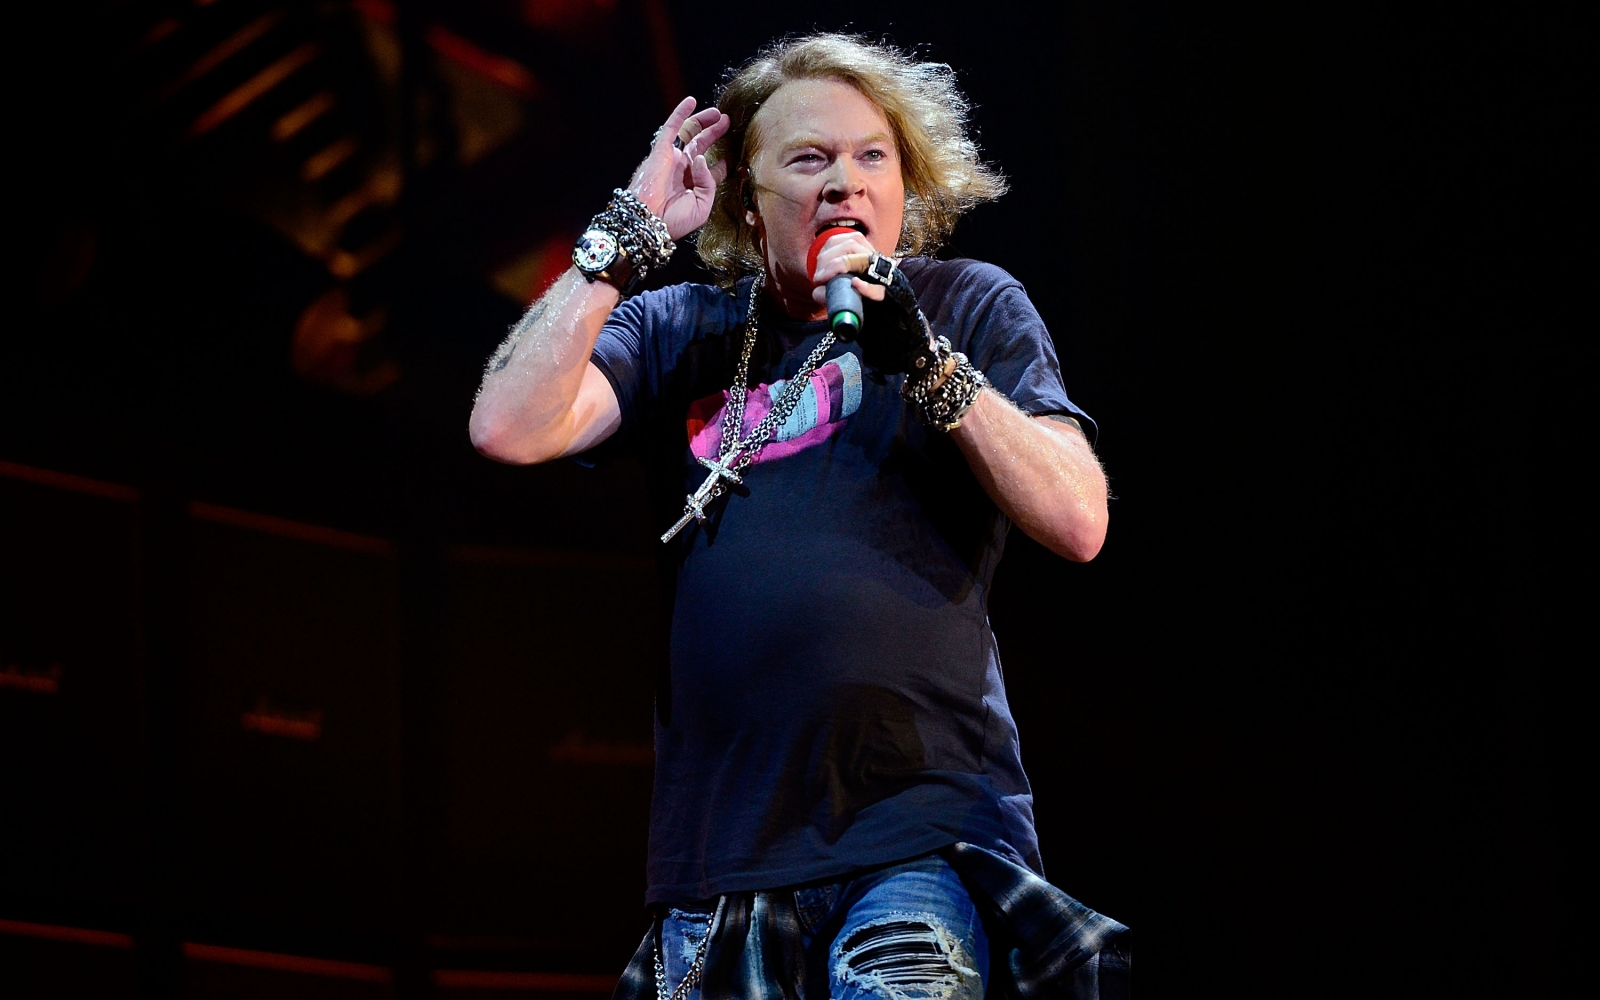 Guns N' Roses tour 2017: How to buy tickets for Not In This Lifetime European shows